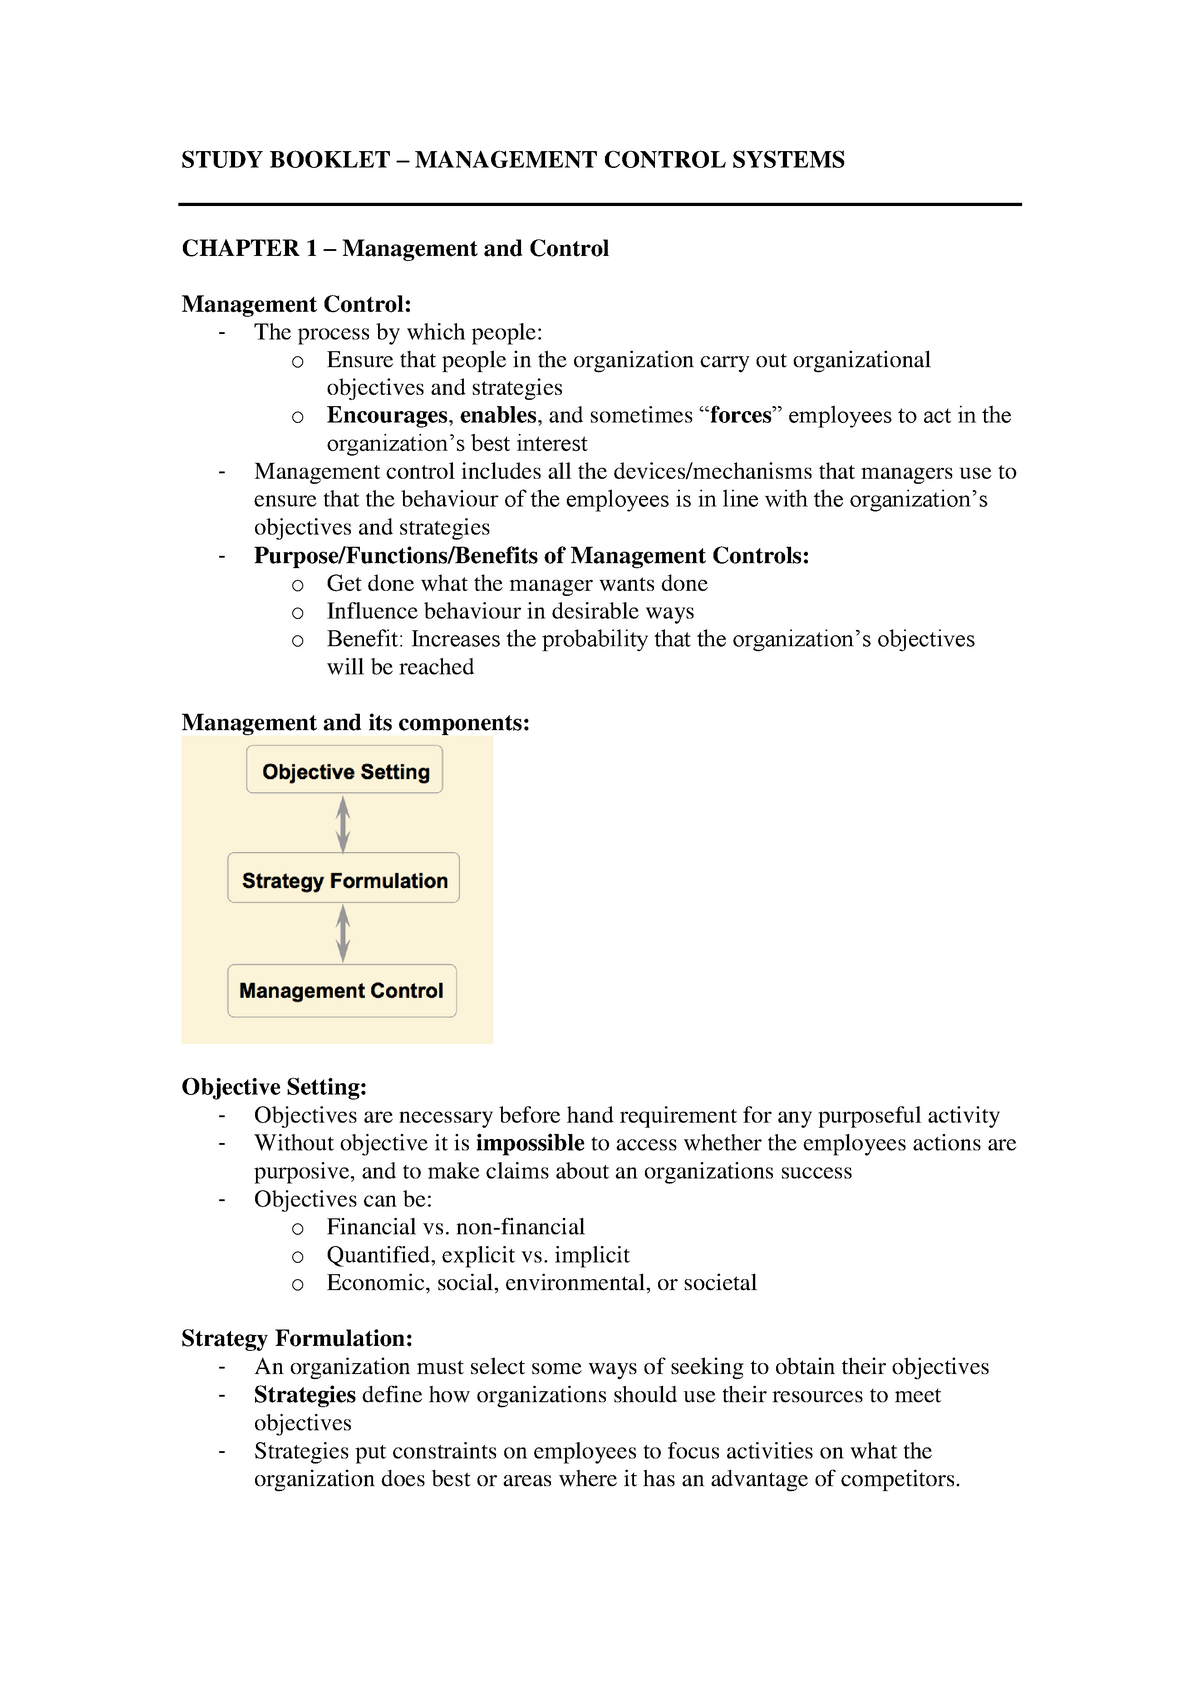 Summary Management Control Systems - book notes management